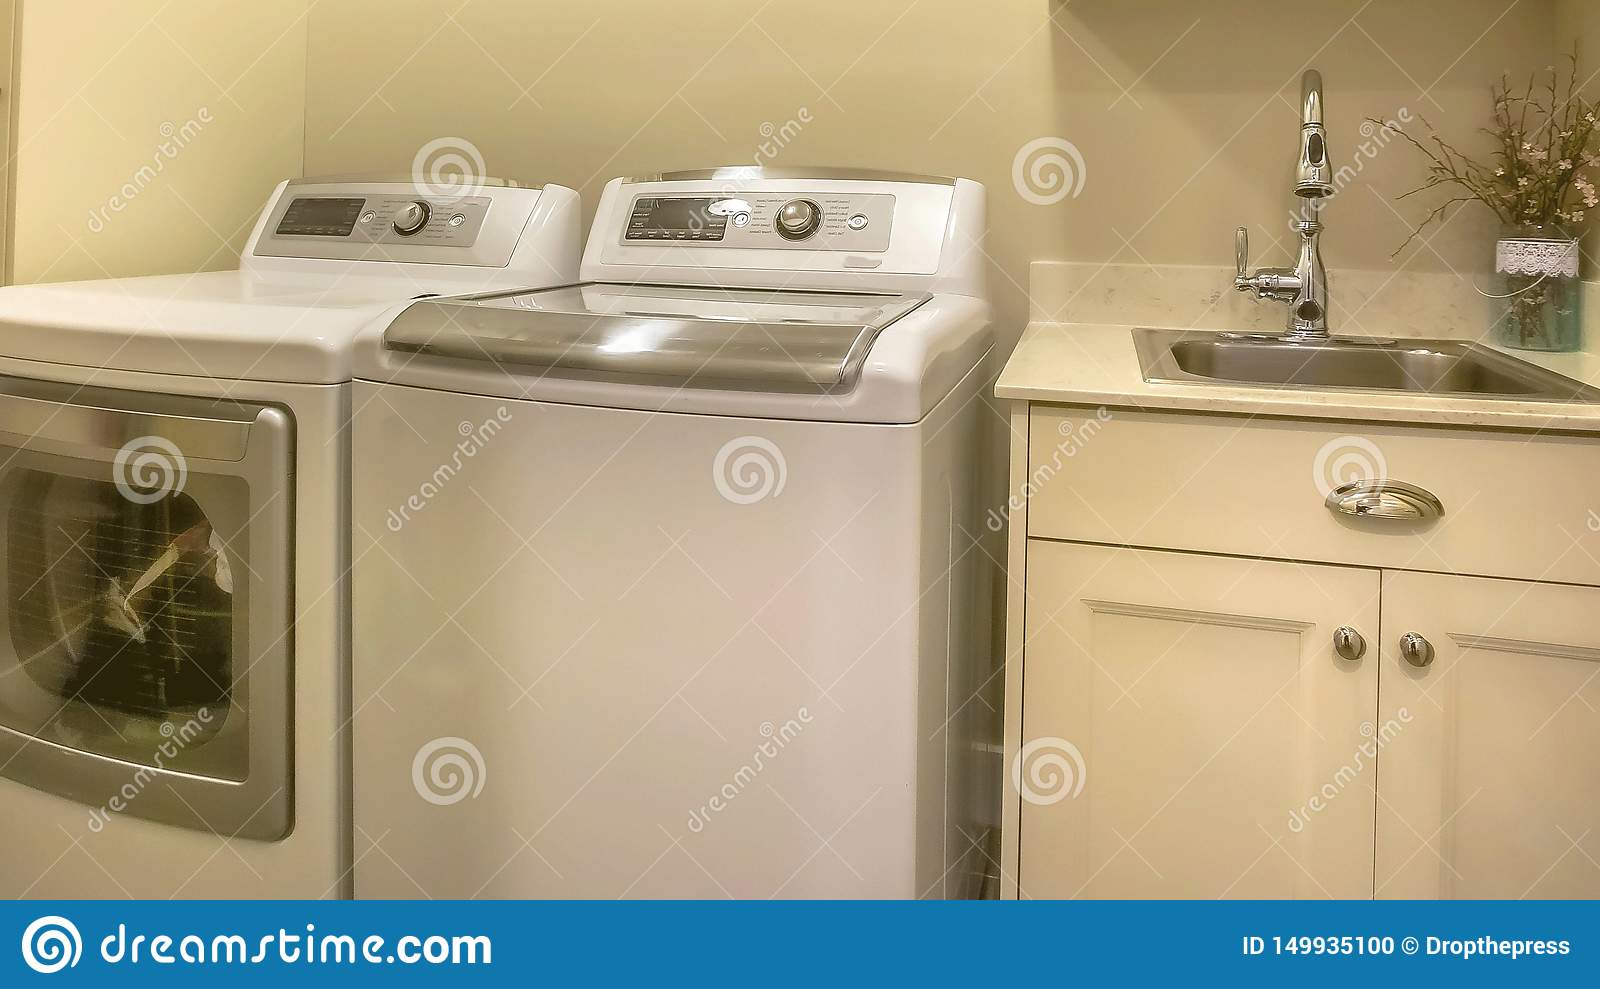 https www dreamstime com panorama frame washing machine dryer inside laundry room house has built cabinets clothes hanger rod shiny faucet image149935100